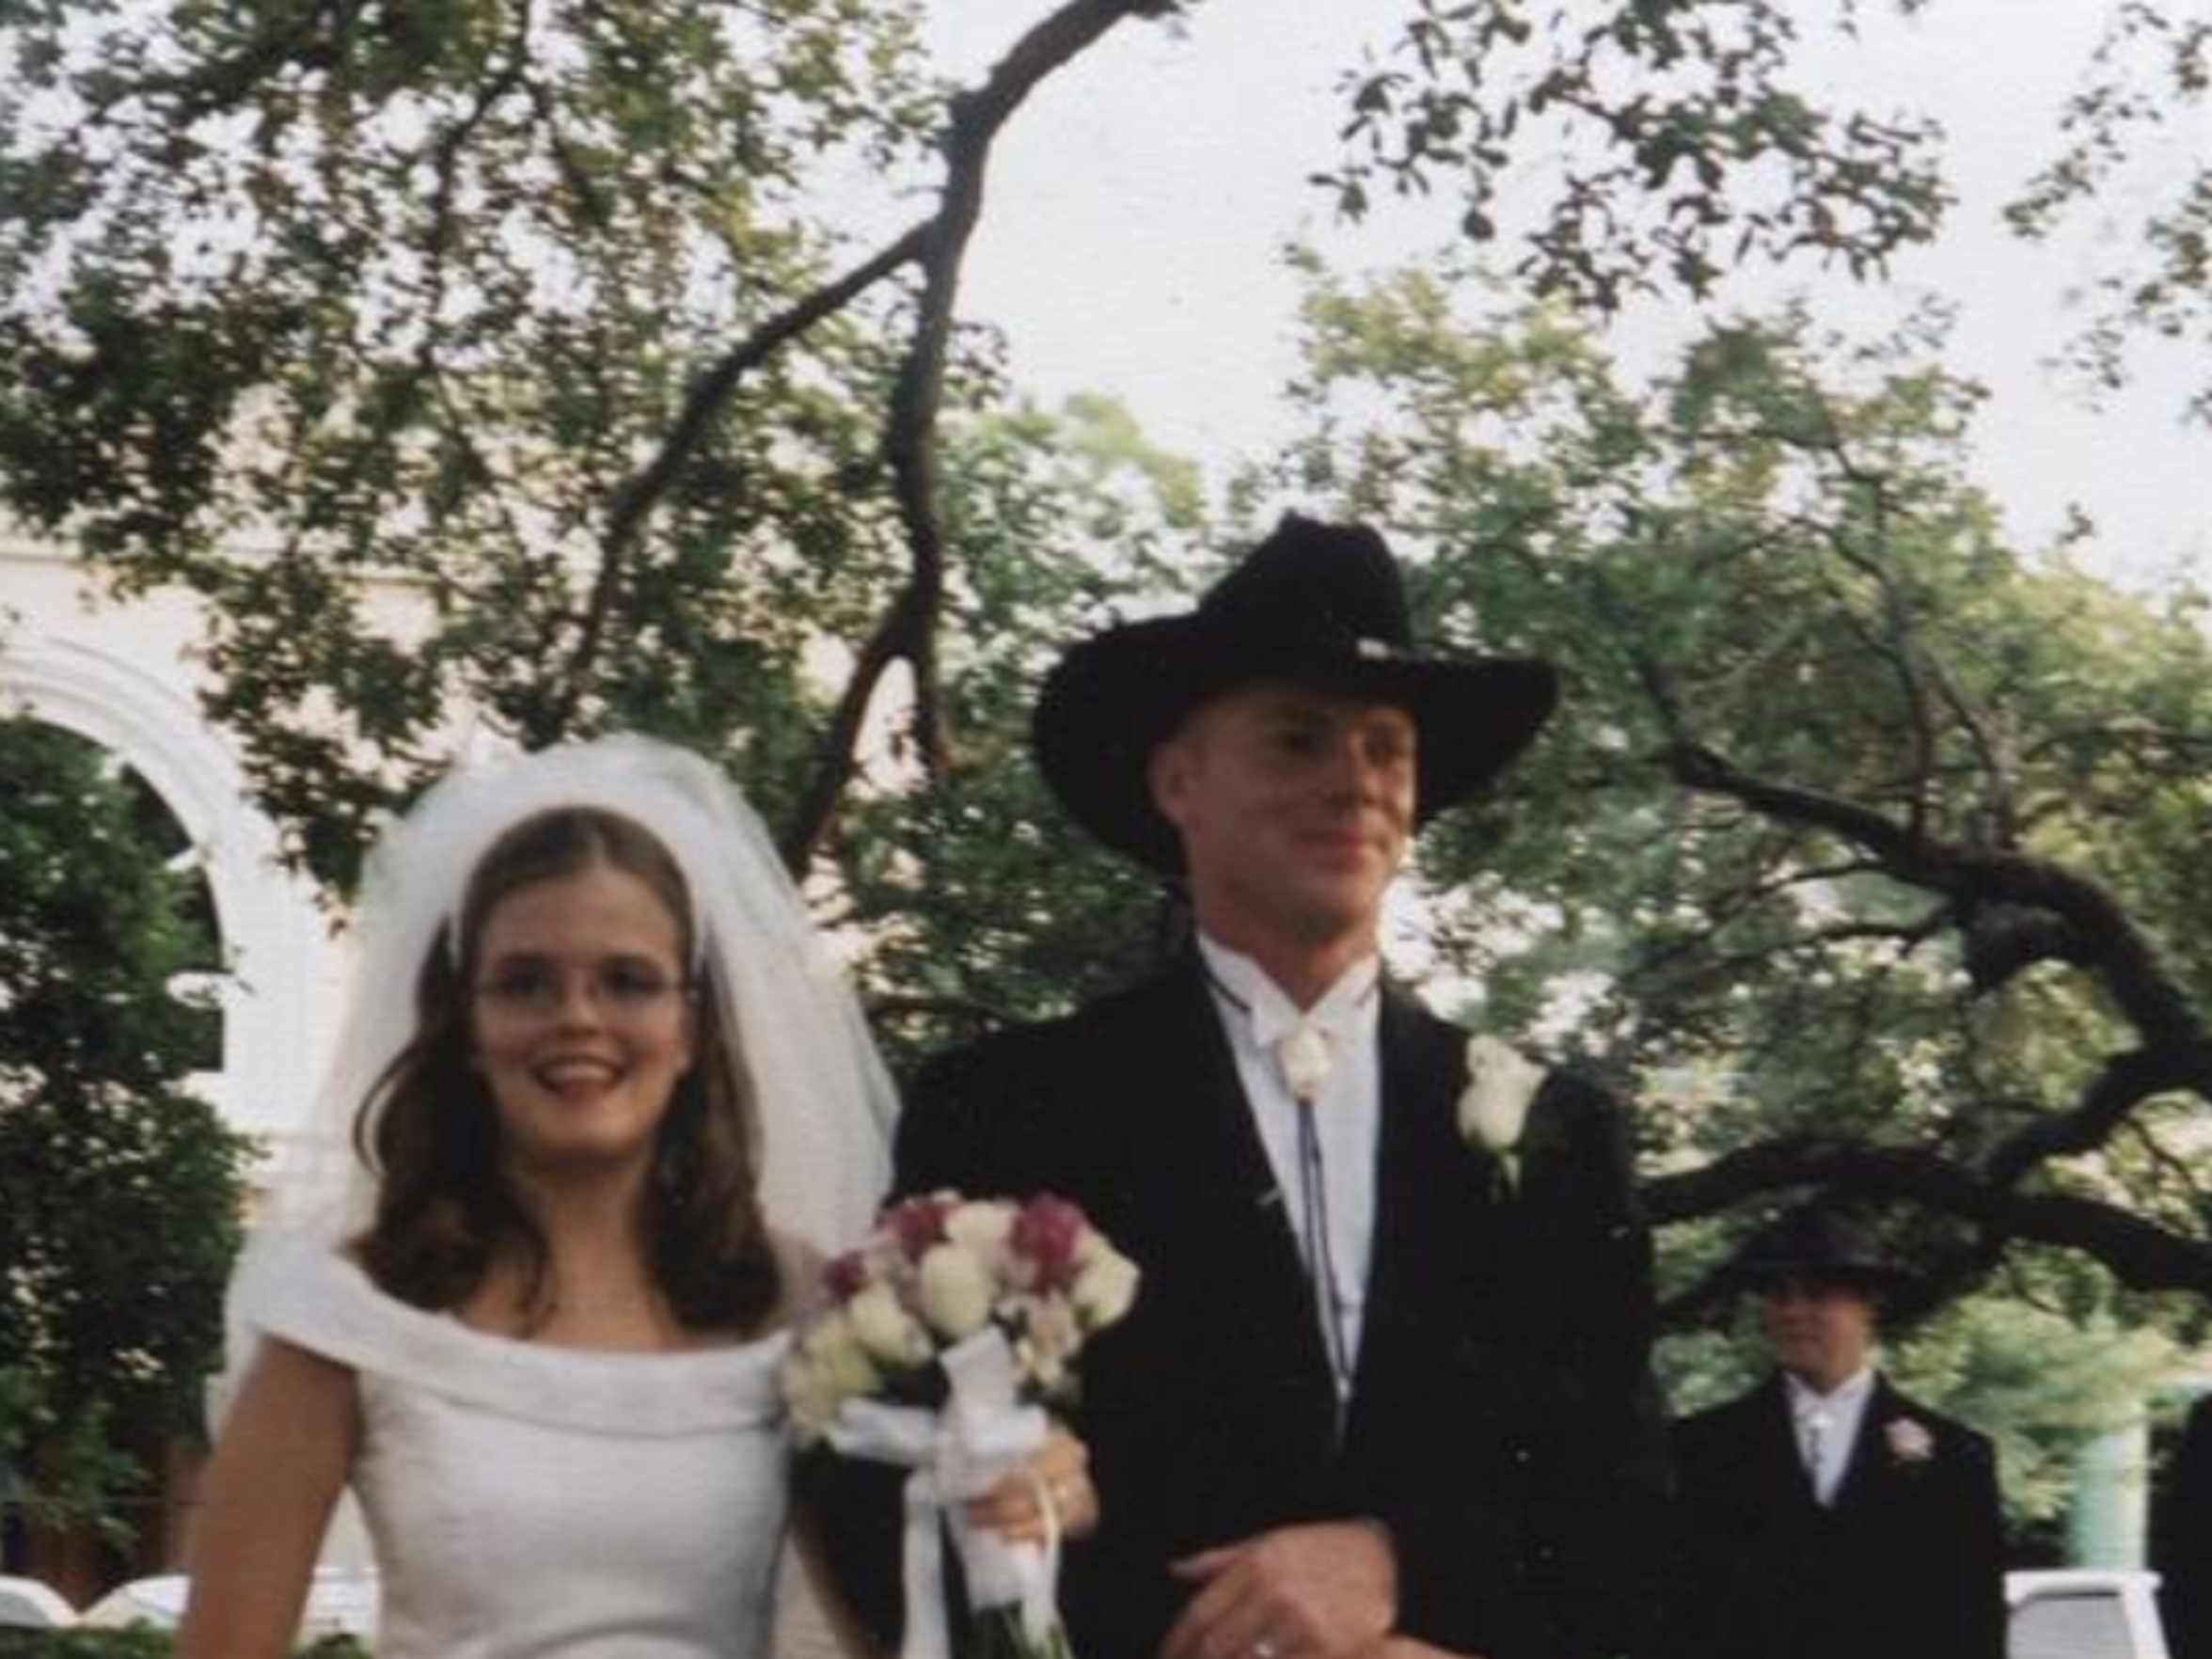 Lana and Evan got married in 2002.